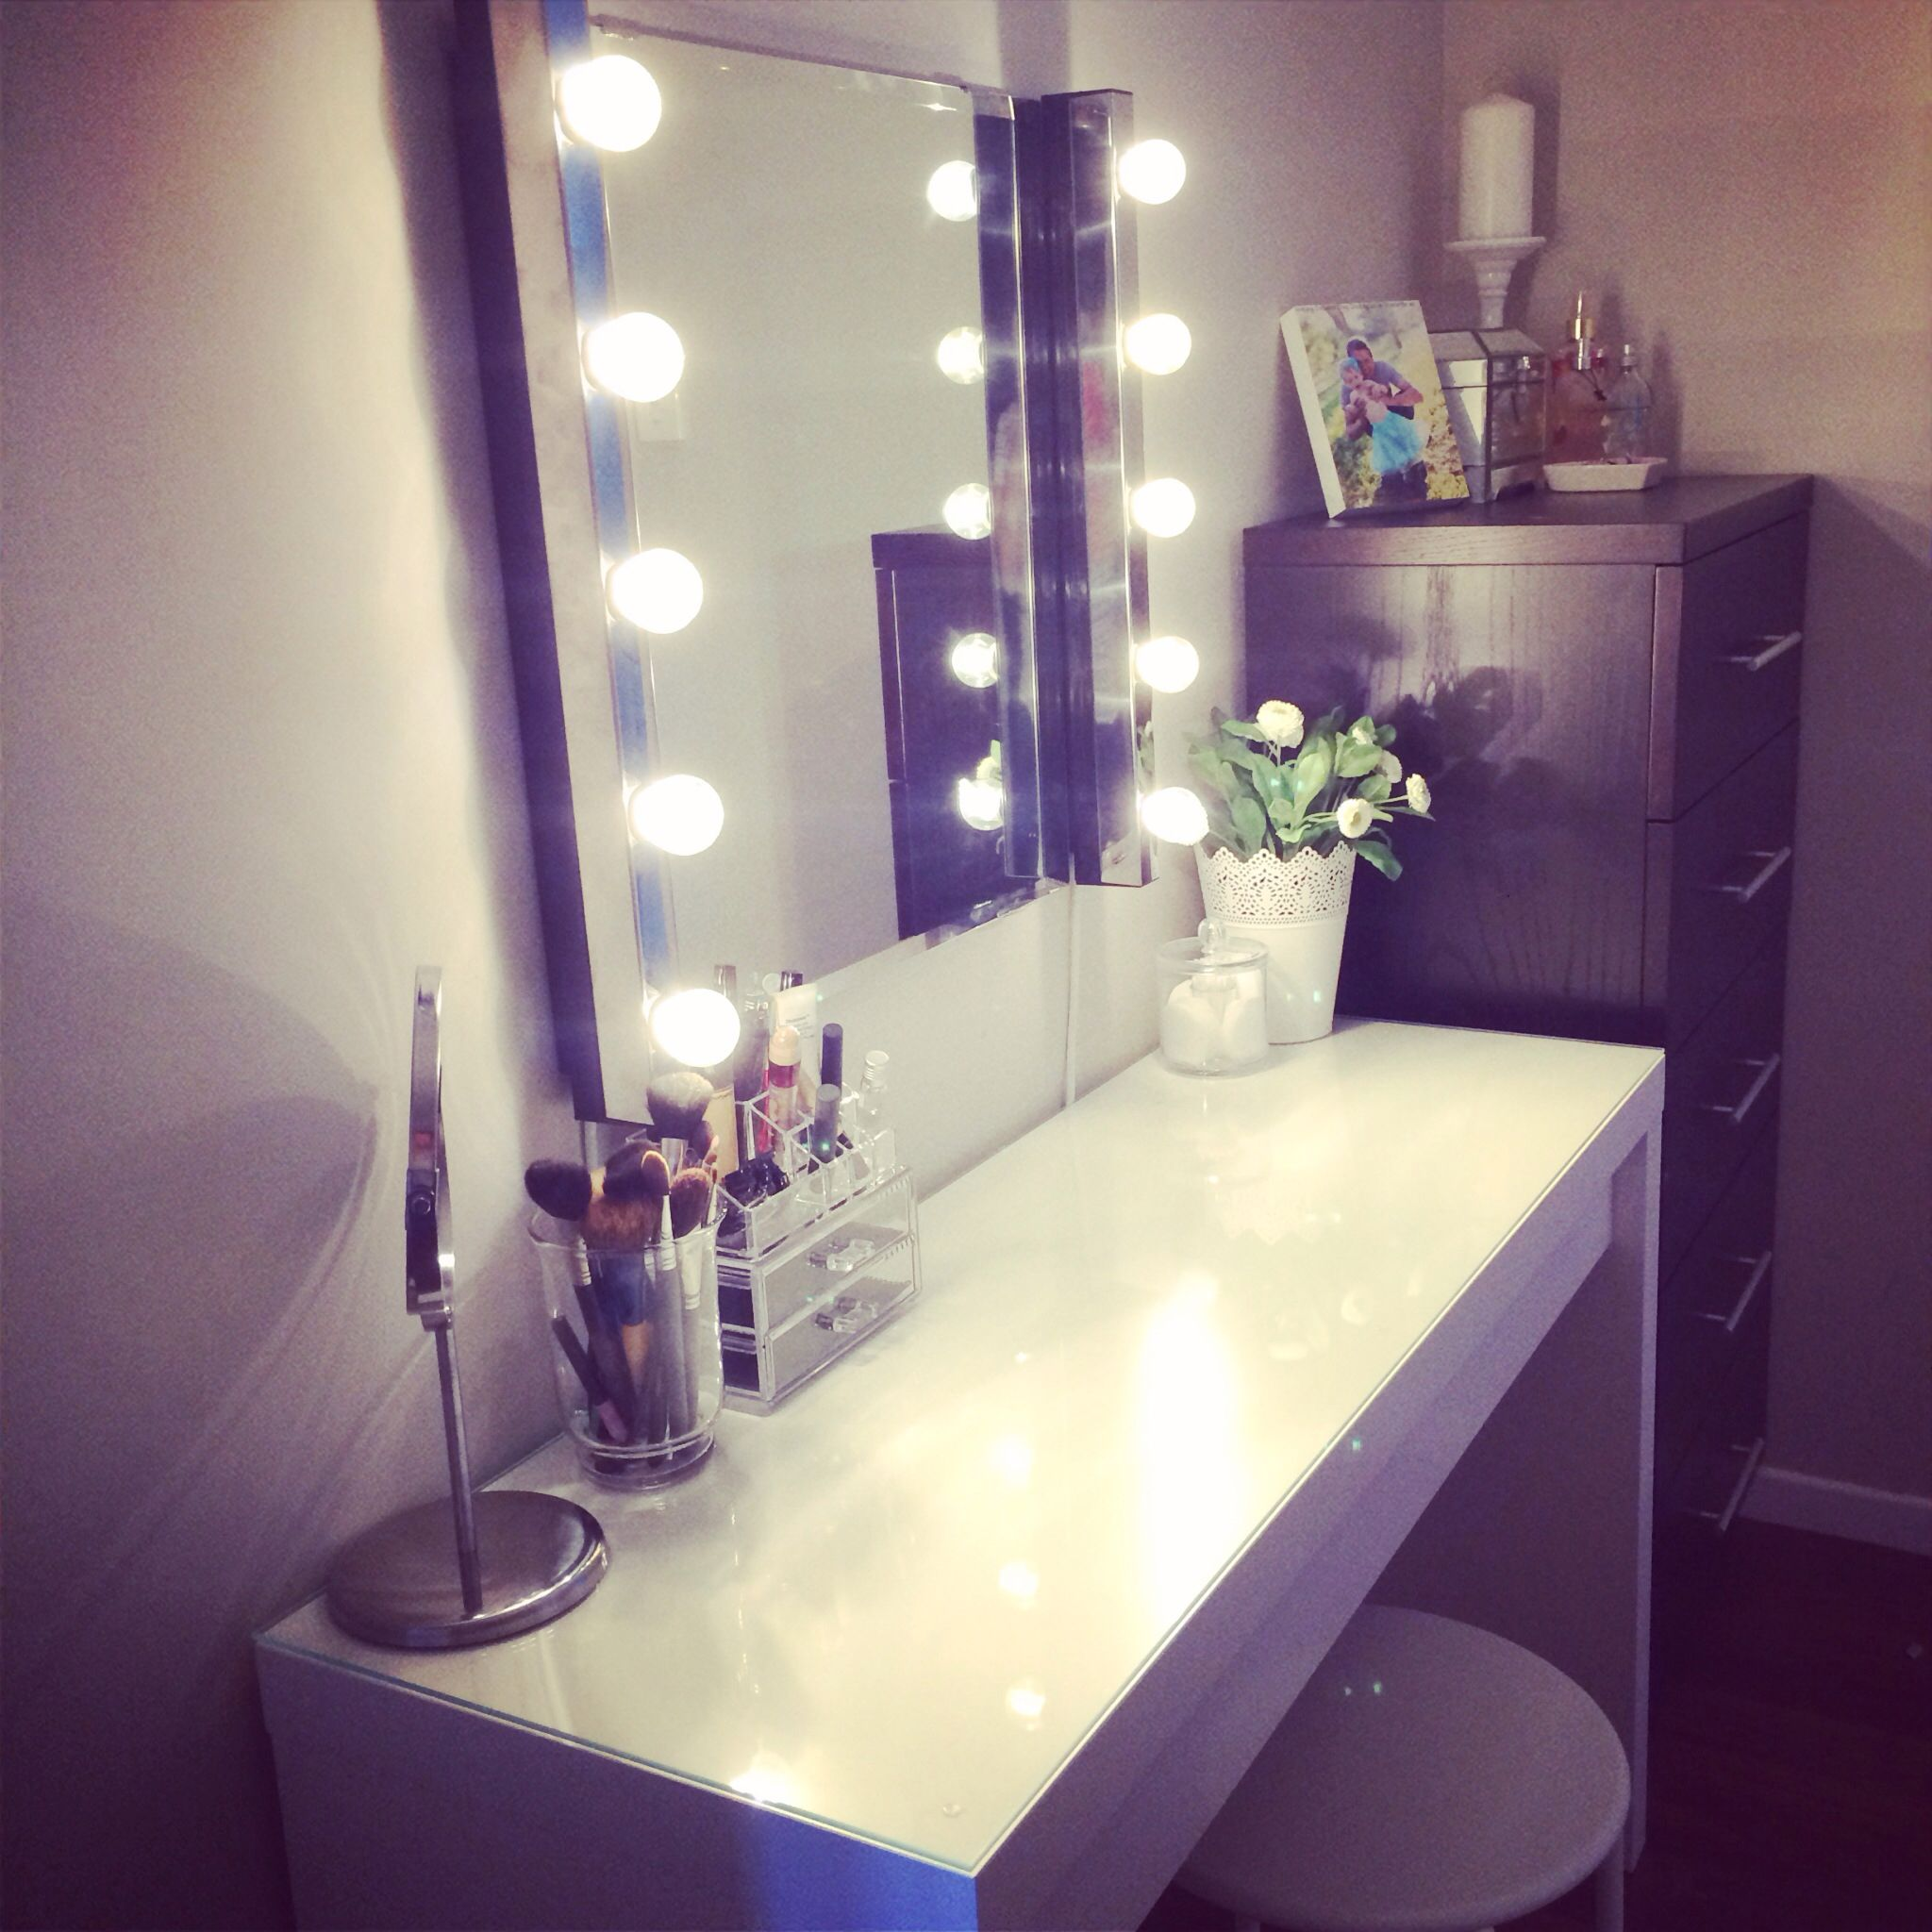 Ikea malm vanity mirror lights and stool also from ikea make accessories furniturecharming white makeup vanity with lights and white wooden table featuring purple frame mirror and 5 step drawer combine with white geotapseo Choice Image